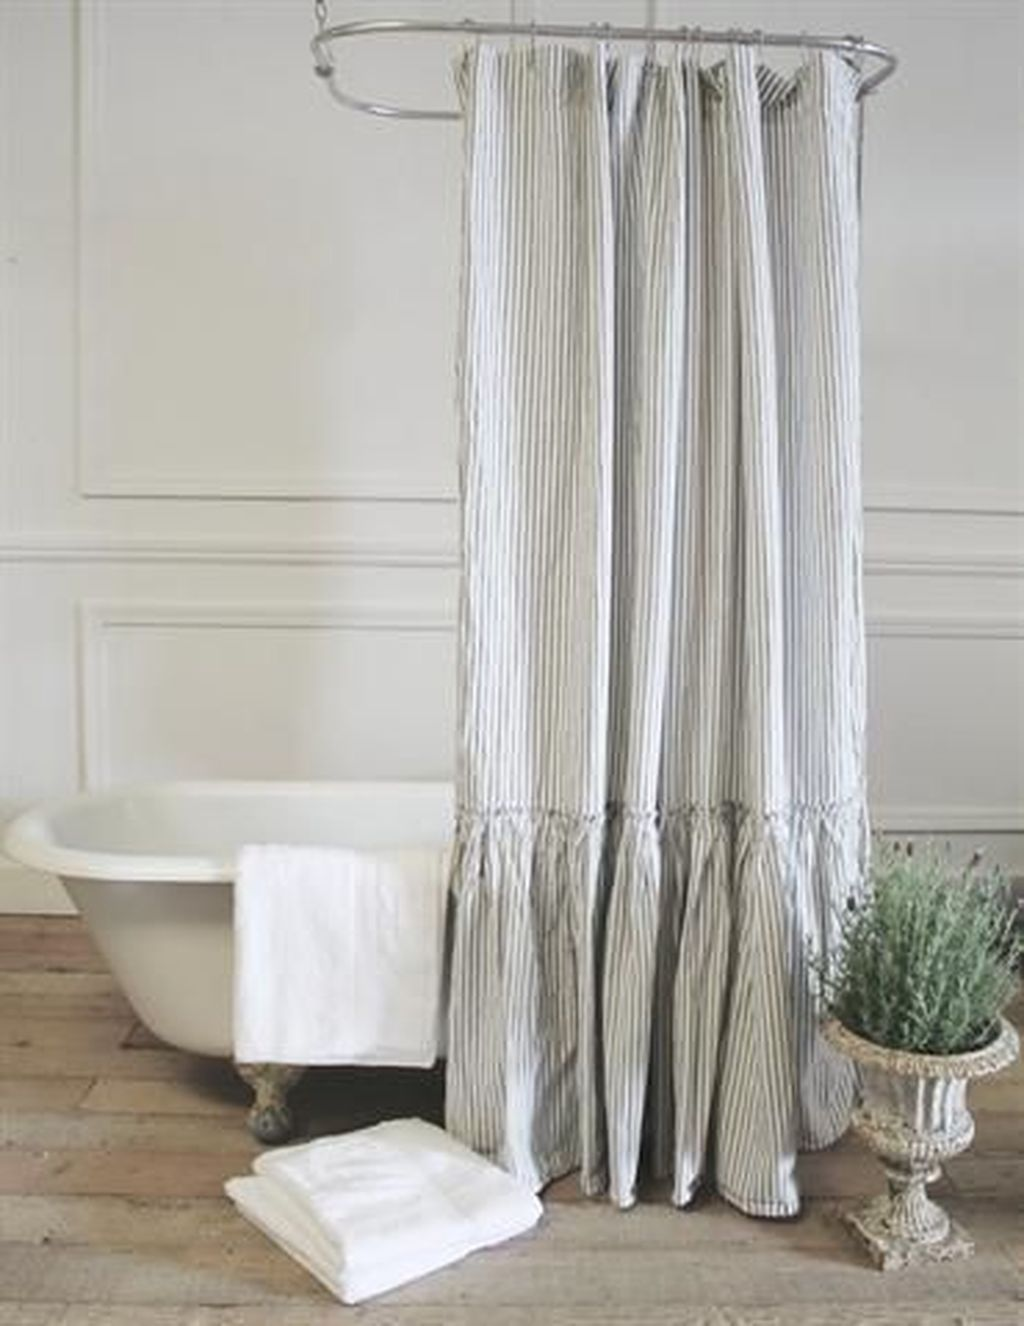 20+ Fancy Shower Curtain Ideas Farmhouse shower curtain